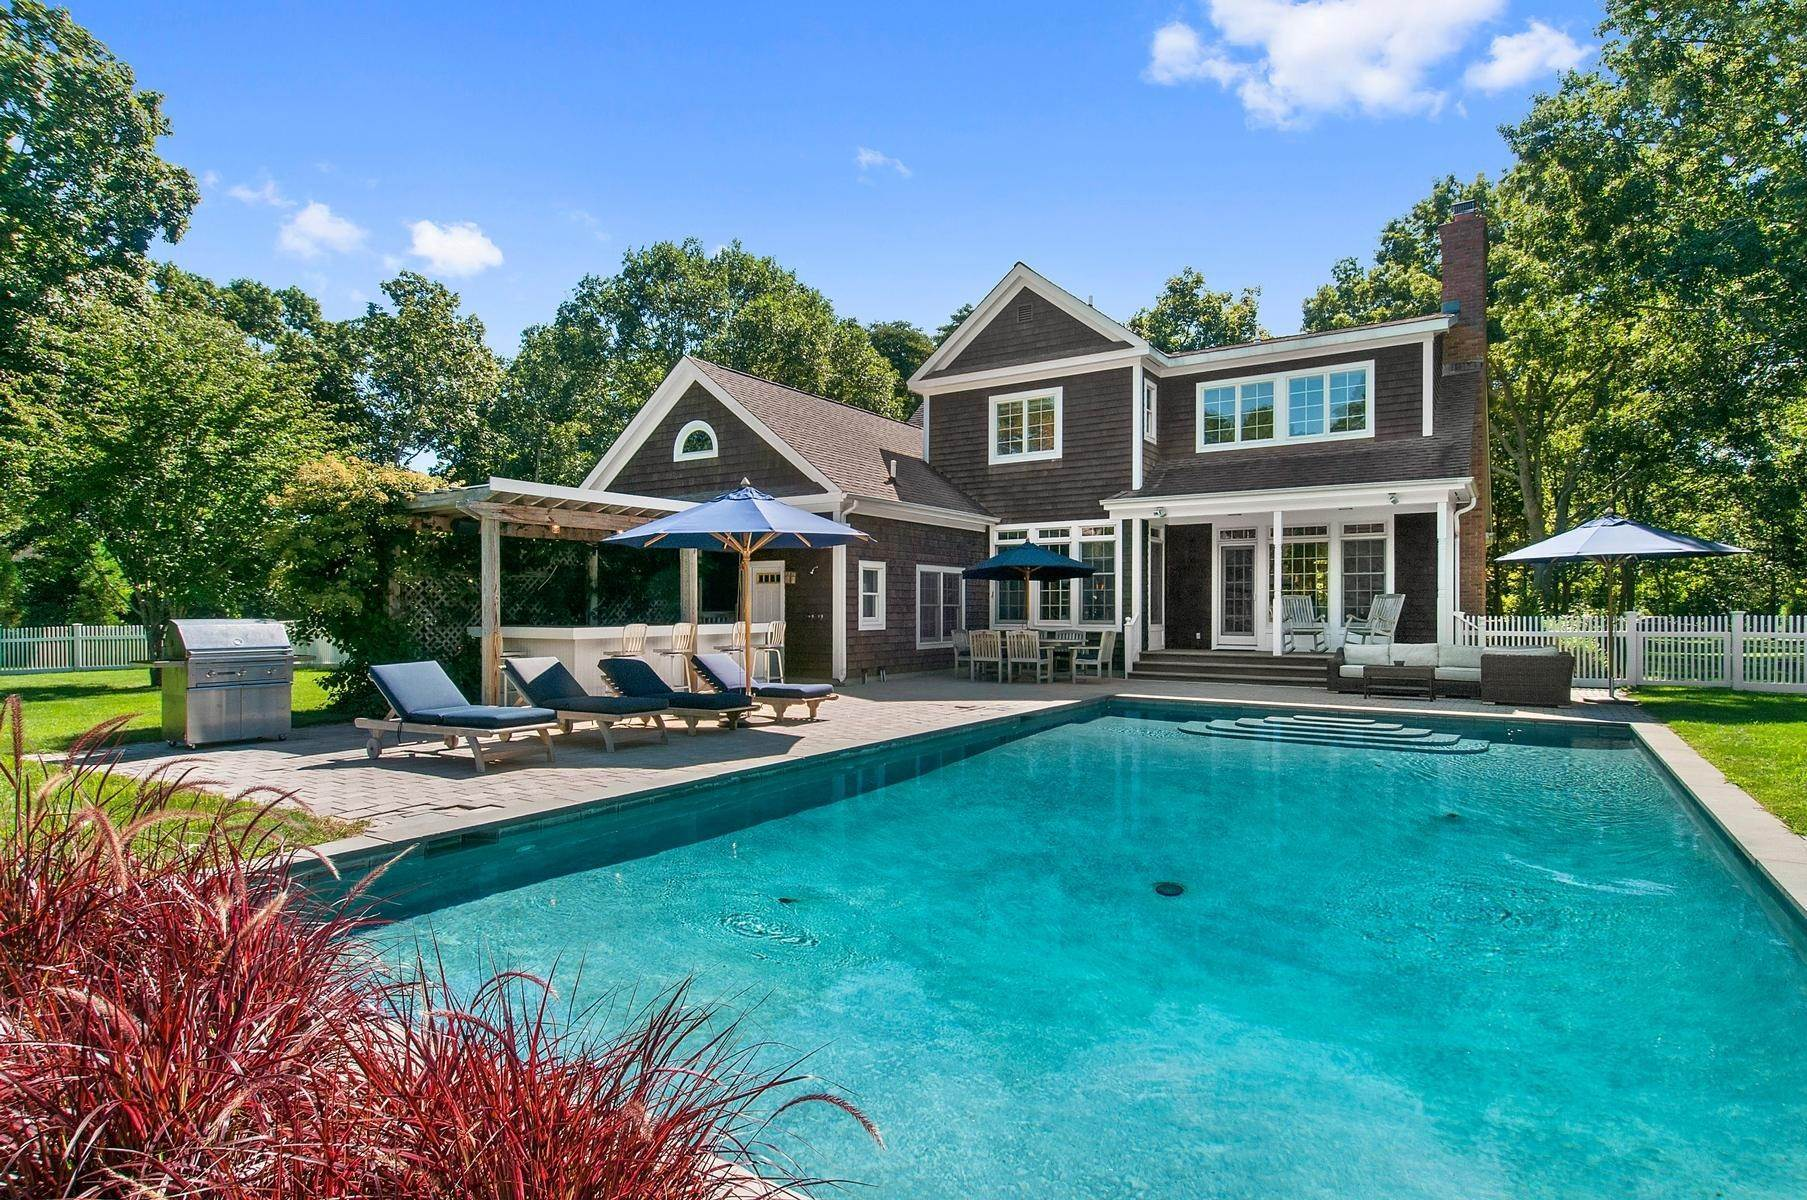 Single Family Home at Lovely Sagaponack Home On A Quiet Cul-De-Sac 100 Greenleaf Lane, Sagaponack Village, NY 11962